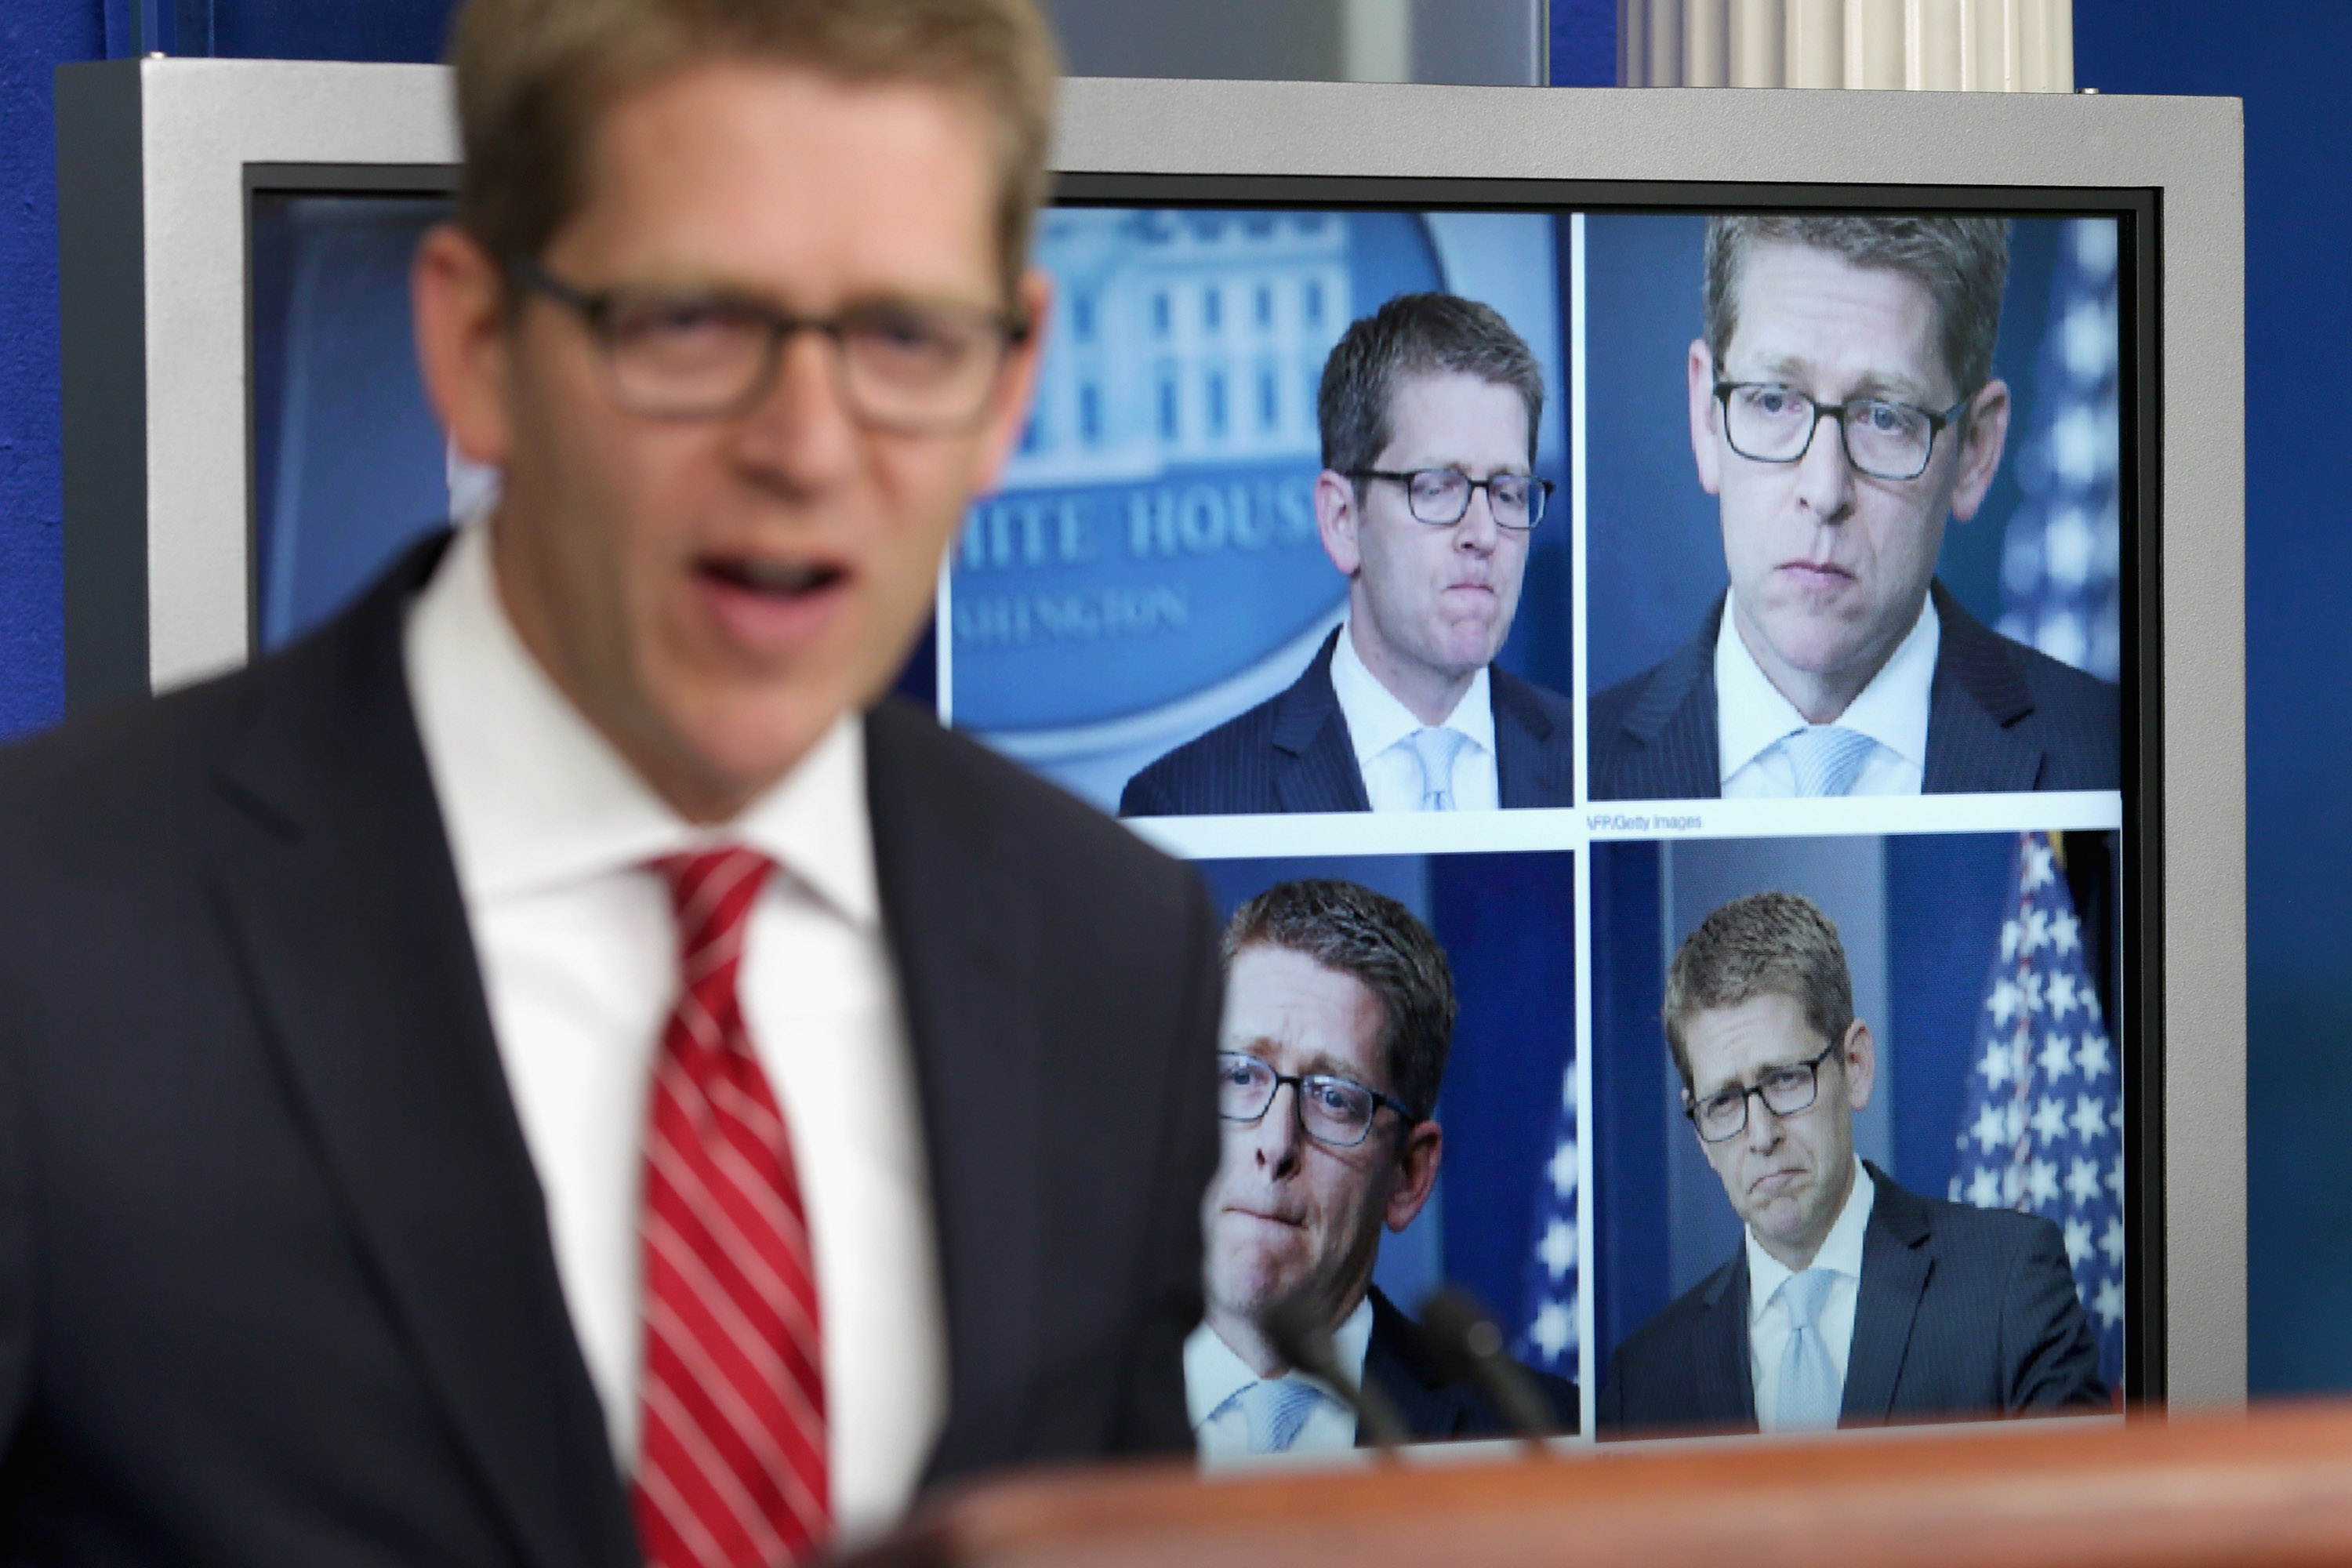 White House Press Secretary Jay Carney displays photographs of himself from Tuesday's briefing before taking questions from reporters in the Brady Press Briefing Room at the White House on May 15, 2013 in Washington.